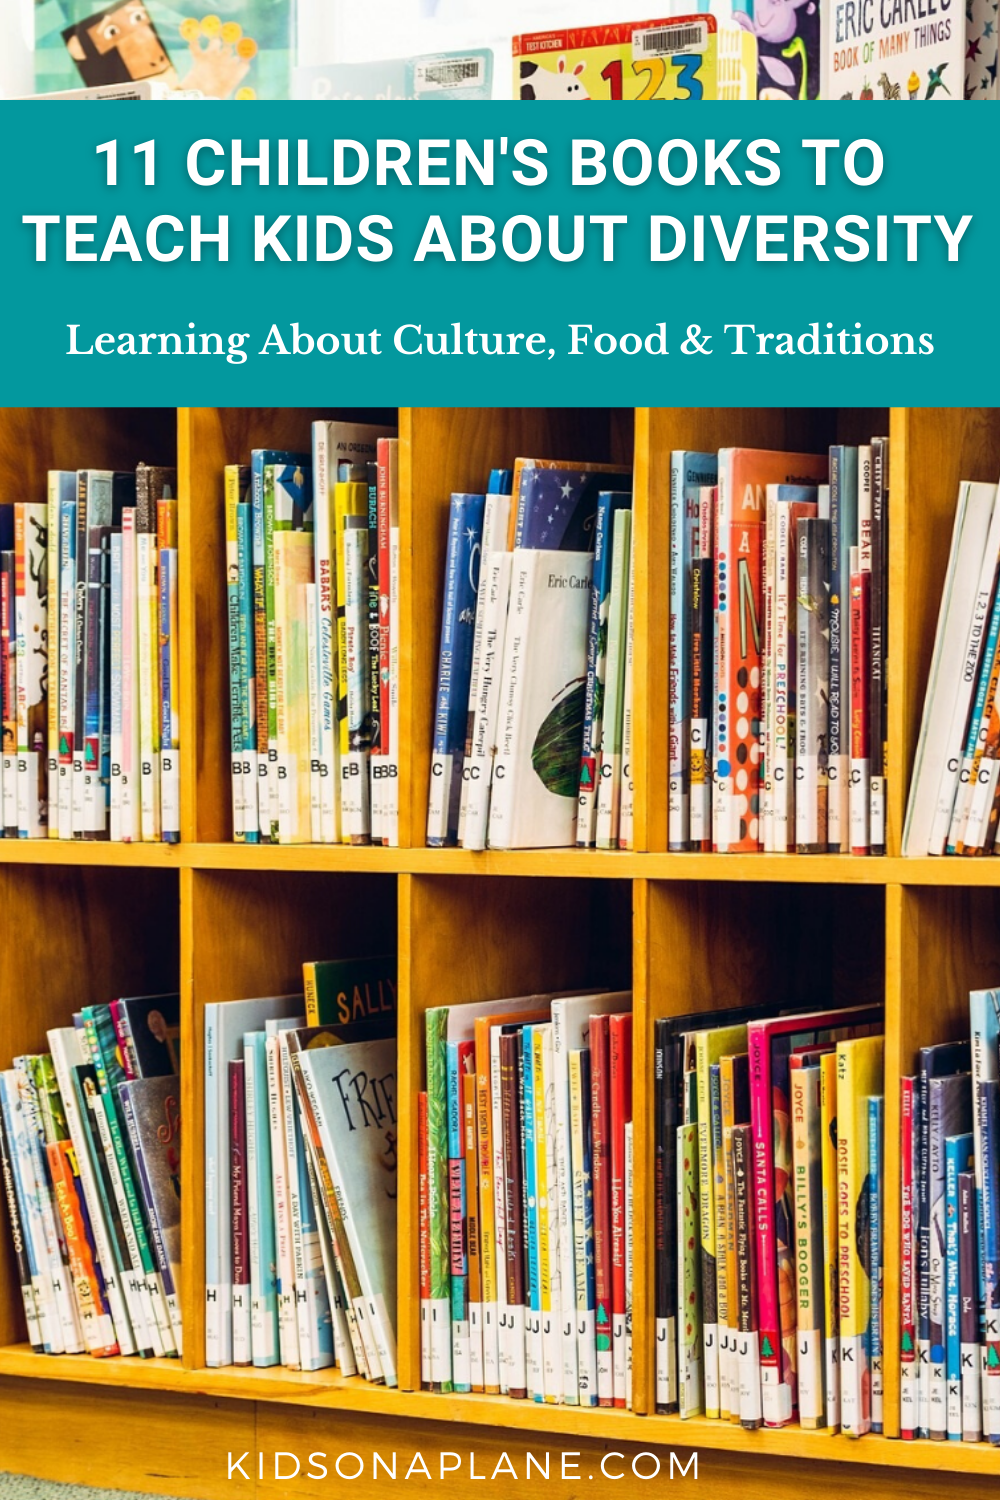 Best Books to Teach Kids about Diversity - 11 books to teach about culture food and traditions